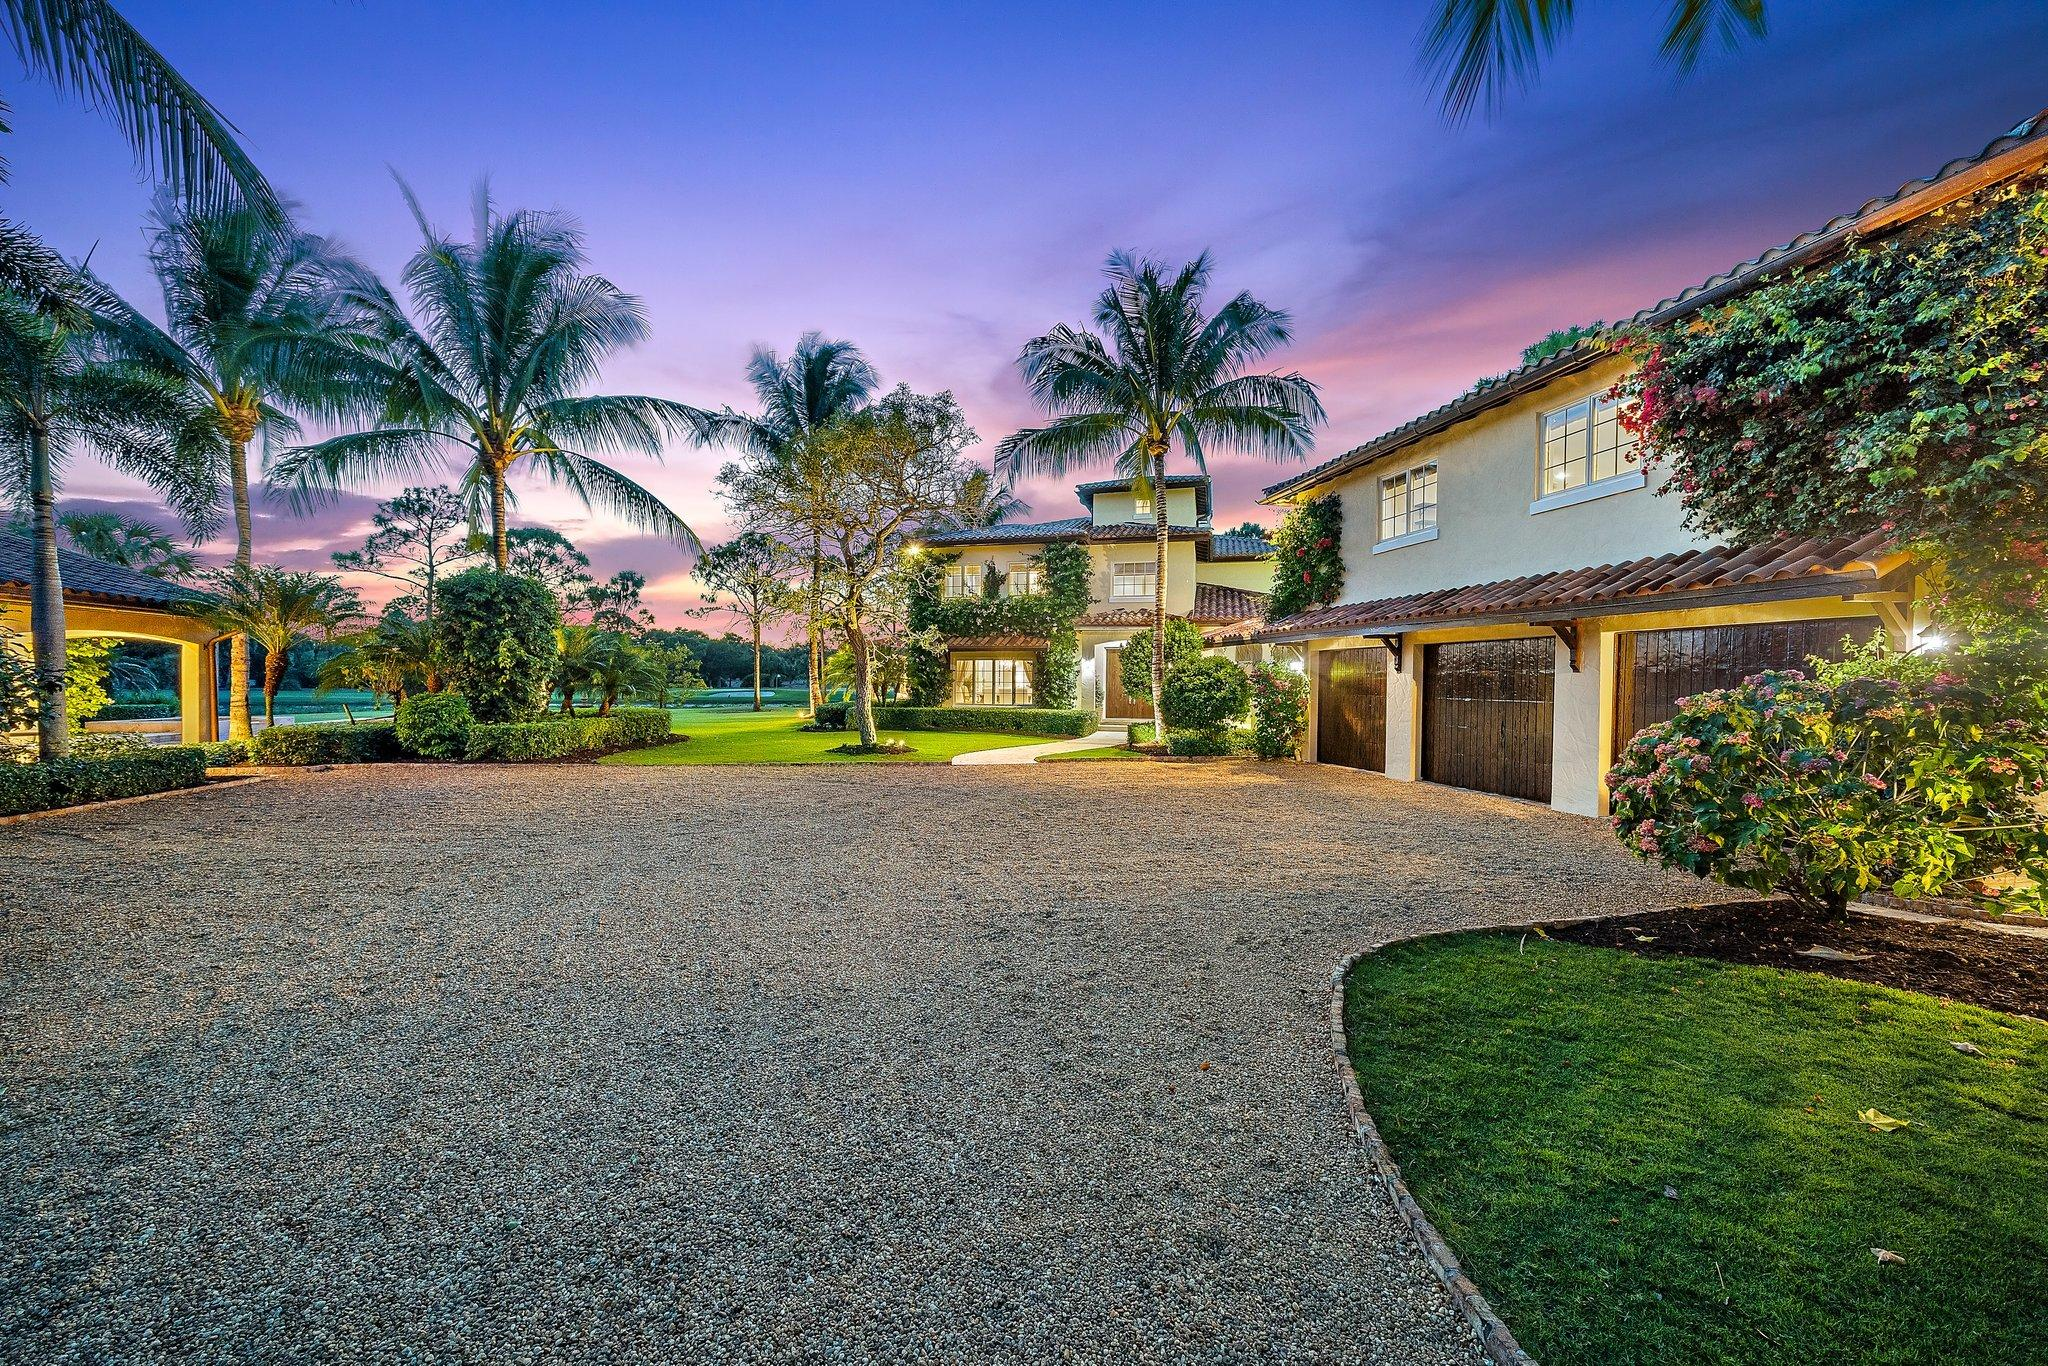 Spectacular estate situated on approx. 1.2 acres in the prestigious Trump National Golf Club, Jupiter. Overlooking the 12th fairway, water & green, this home offers over 7,100 sq.ft. of living space including a beautifully custom built main house featuring superior craftsmanship, an expansive gourmet chef's kitchen, wine cellar, large living spaces, high ceilings, an elevator and so much more. A luxurious private guest suite is set atop the 3-car garage. The spa inspired pool house boasts a sauna, steam room, gym, a full kitchen, cigar lounge & a wood fire pizza oven sets the mood for sunset dining. The meticulously maintained landscaping ensures complete privacy with beautiful lush gardens and putting green. An extensive indoor/outdoor living space makes this home an entertainer's dream.